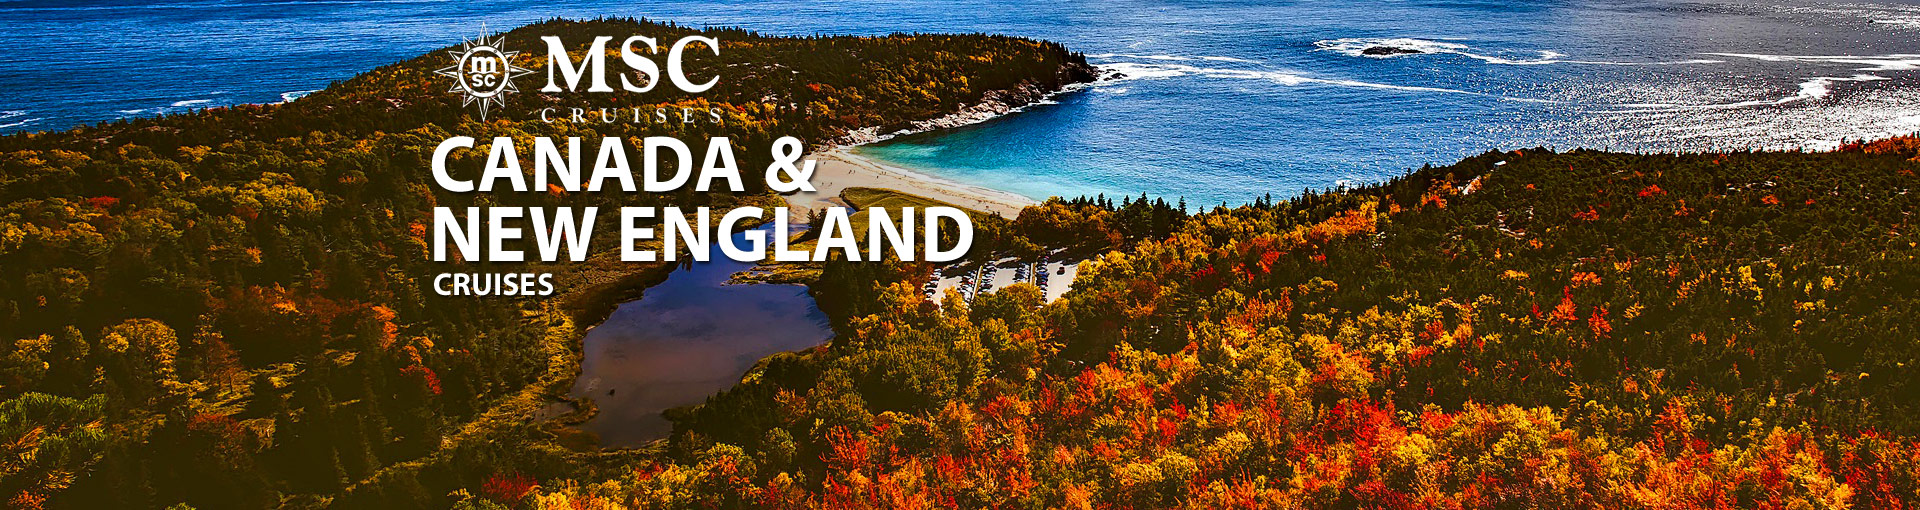 MSC Cruises to Canada and New England